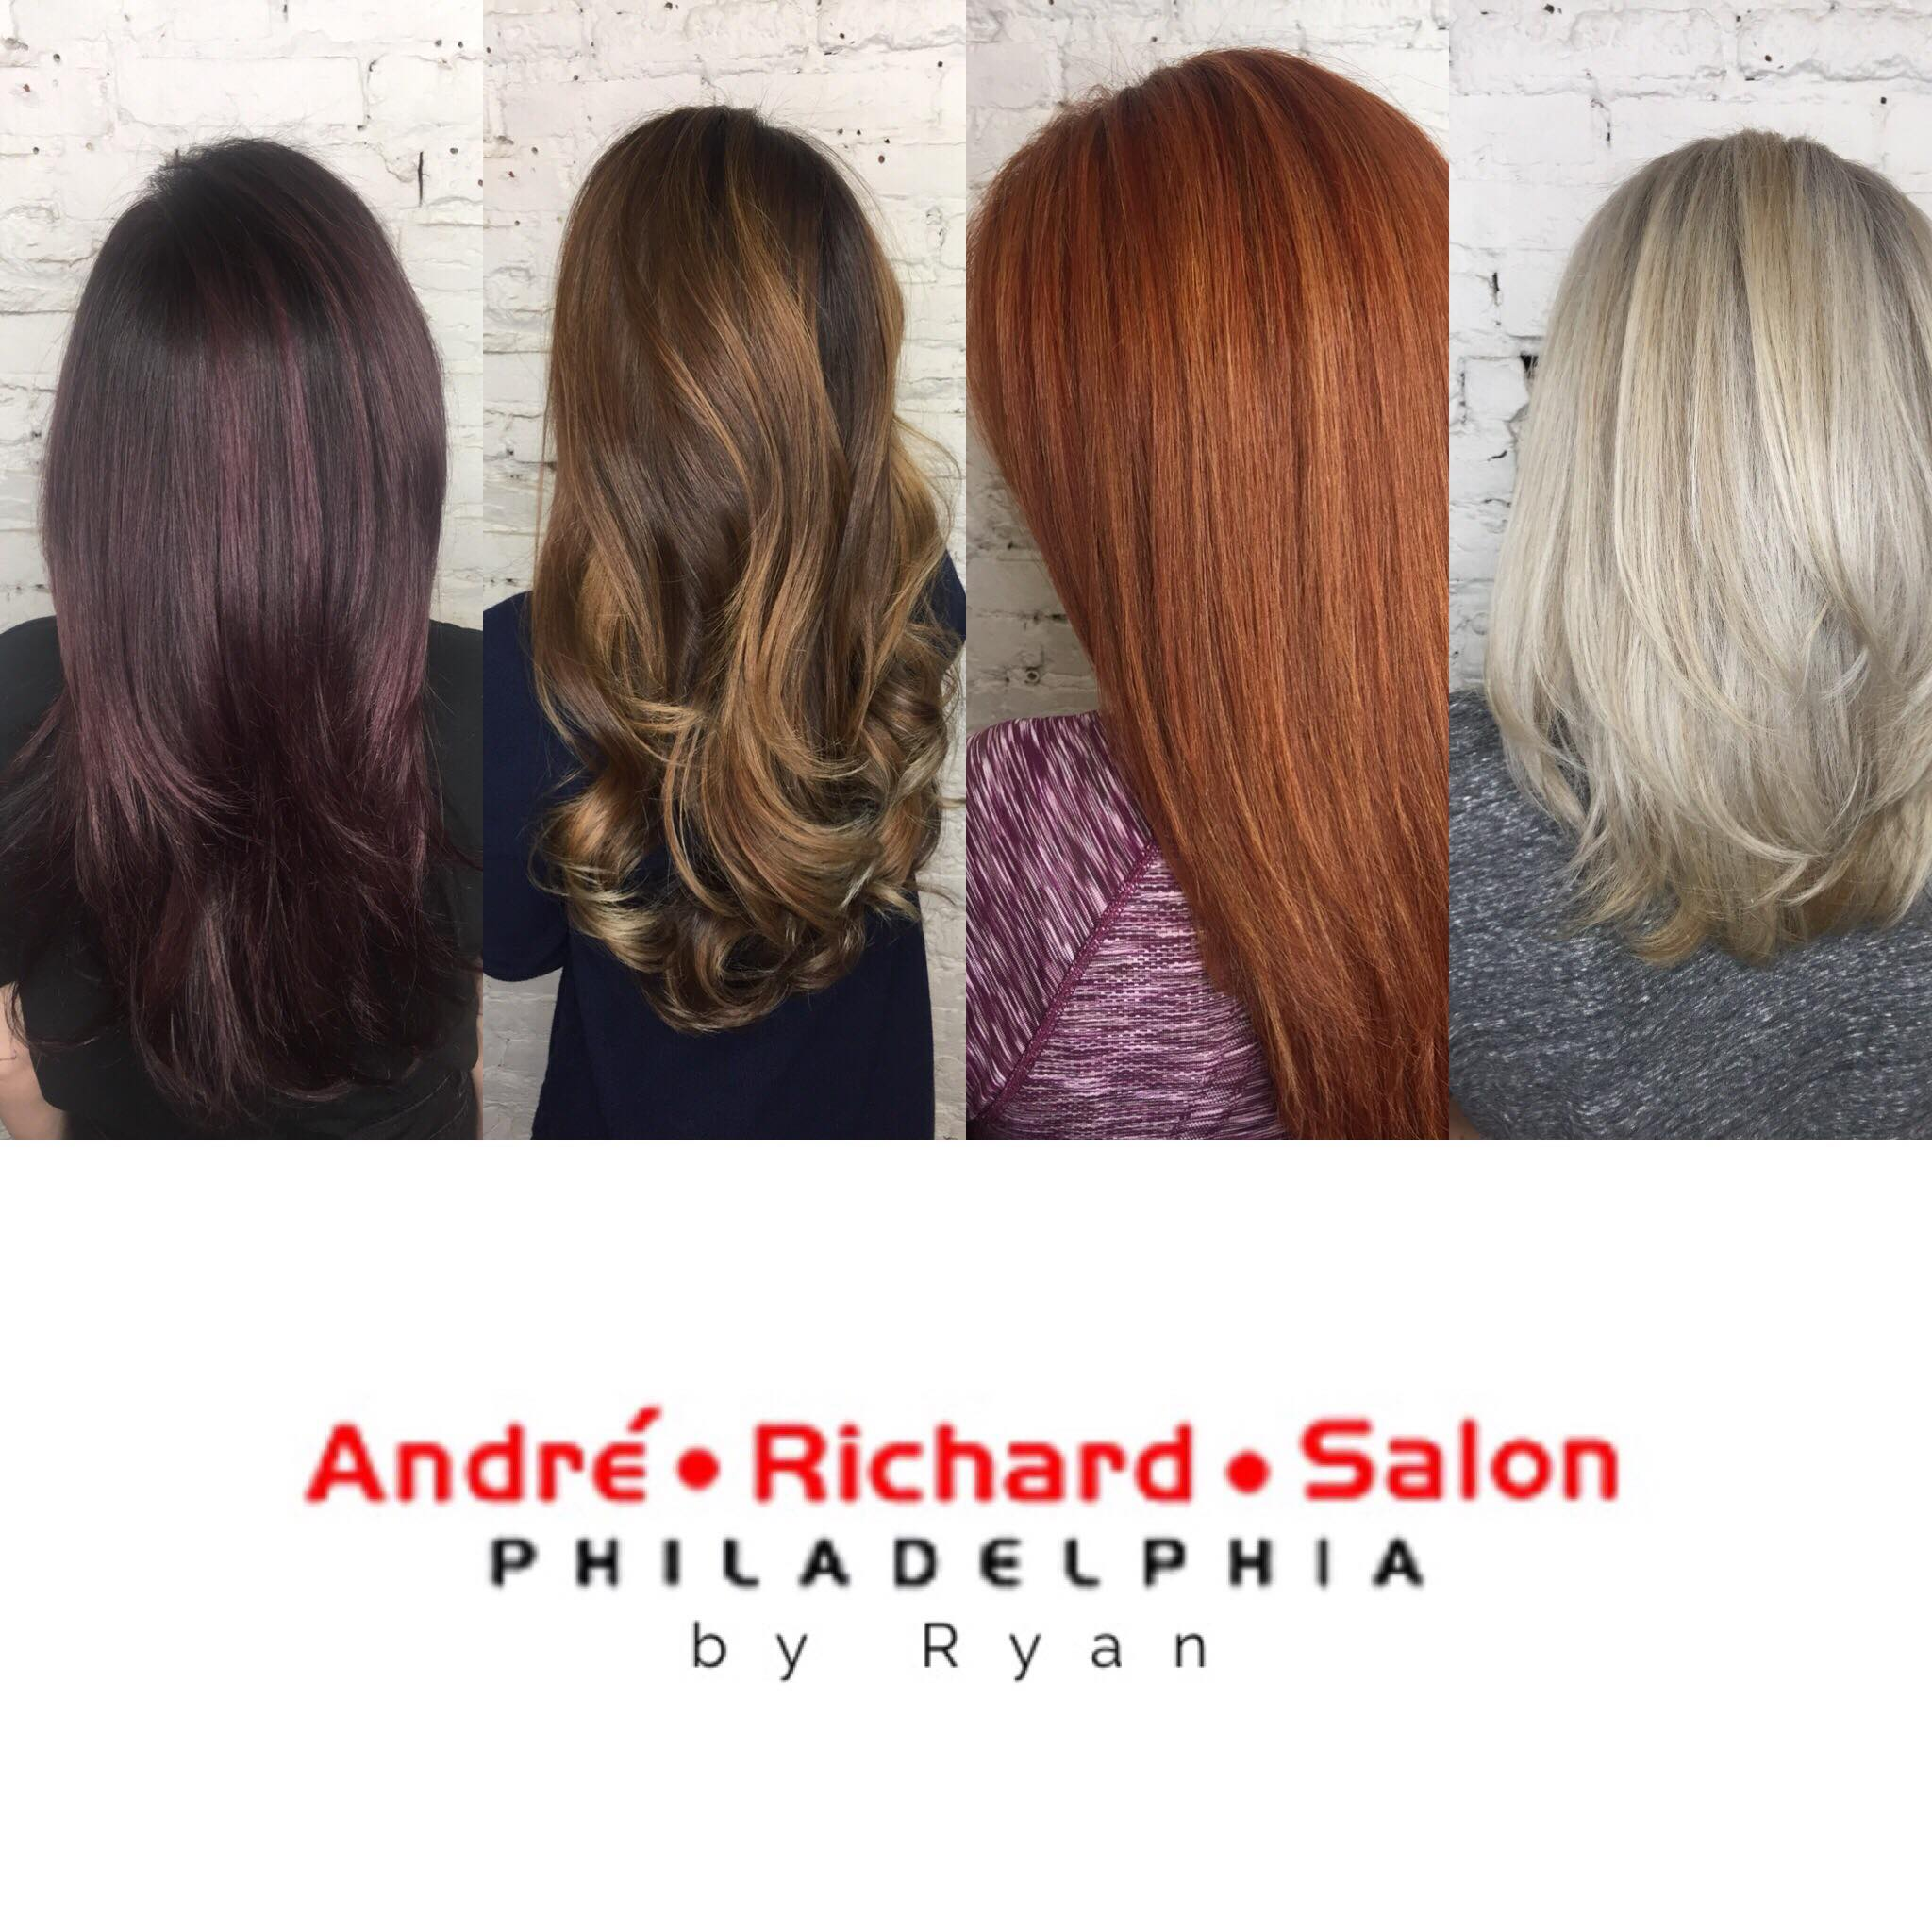 April 2018 Specials at Andre Richard Salon